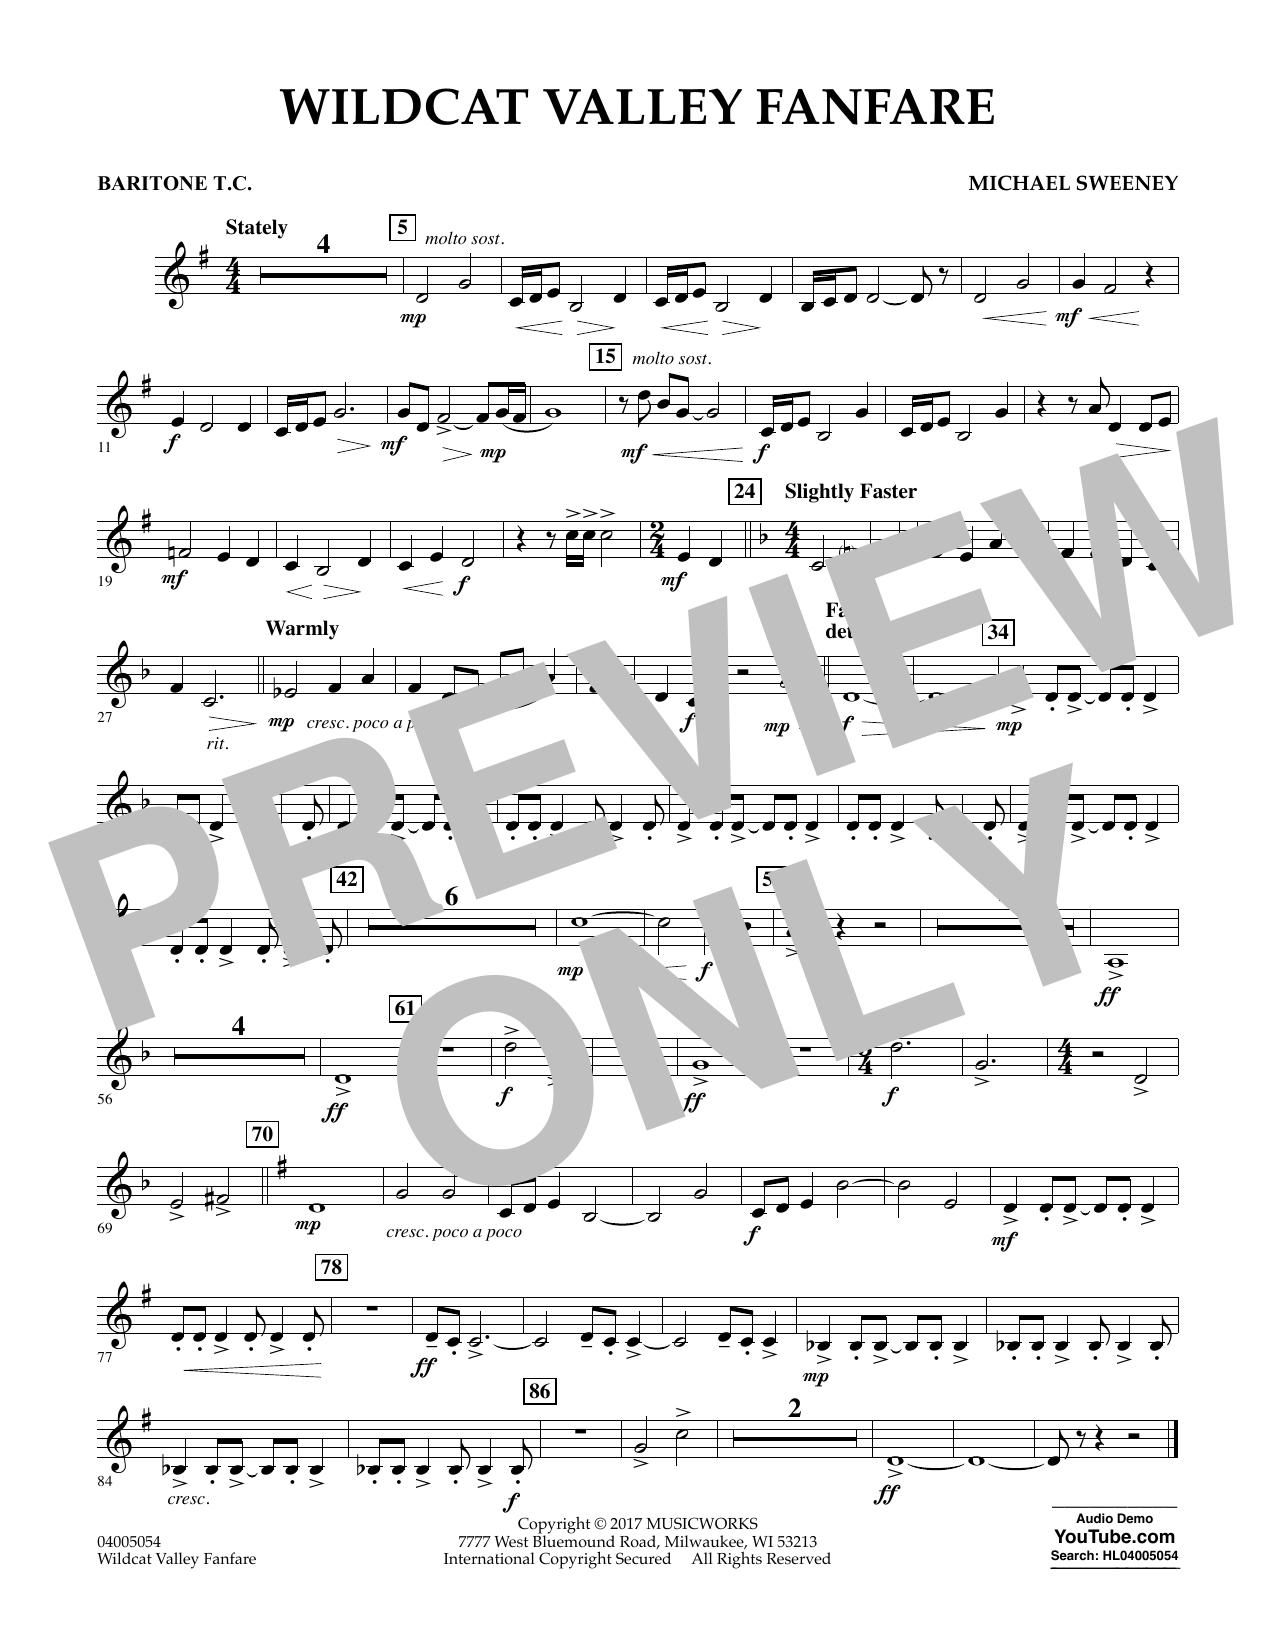 Michael Sweeney Wildcat Valley Fanfare - Baritone T.C. sheet music notes and chords. Download Printable PDF.